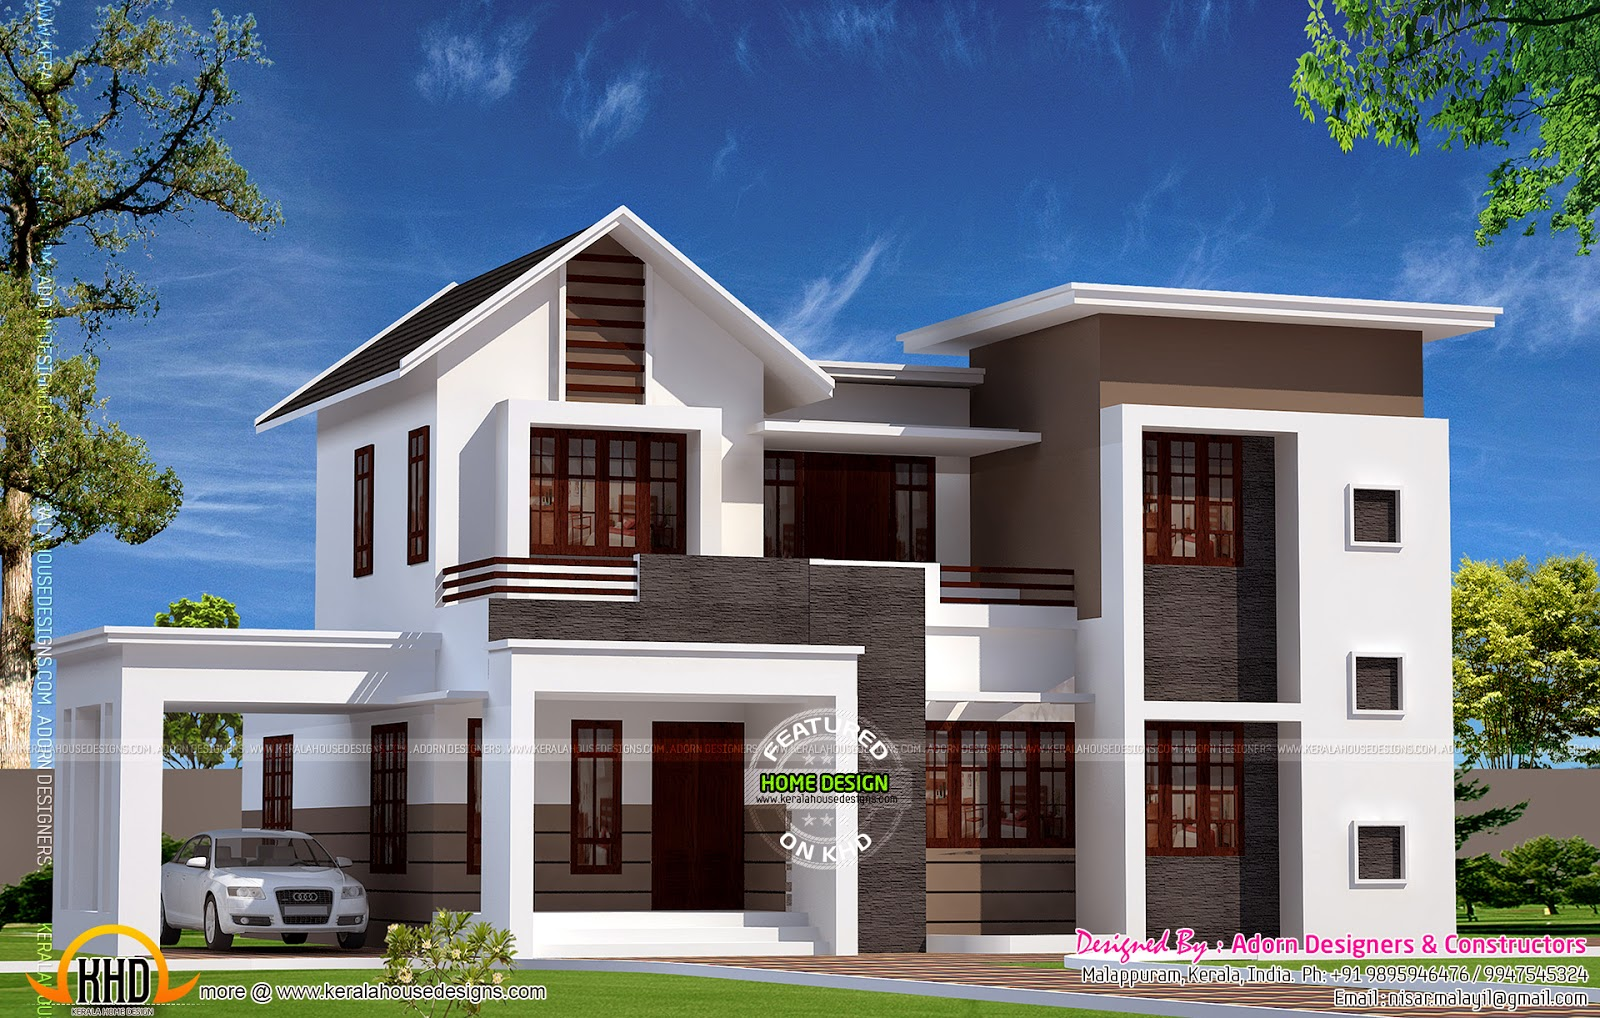 New house design in 1900 sq feet kerala home design and for Kerala home designs com